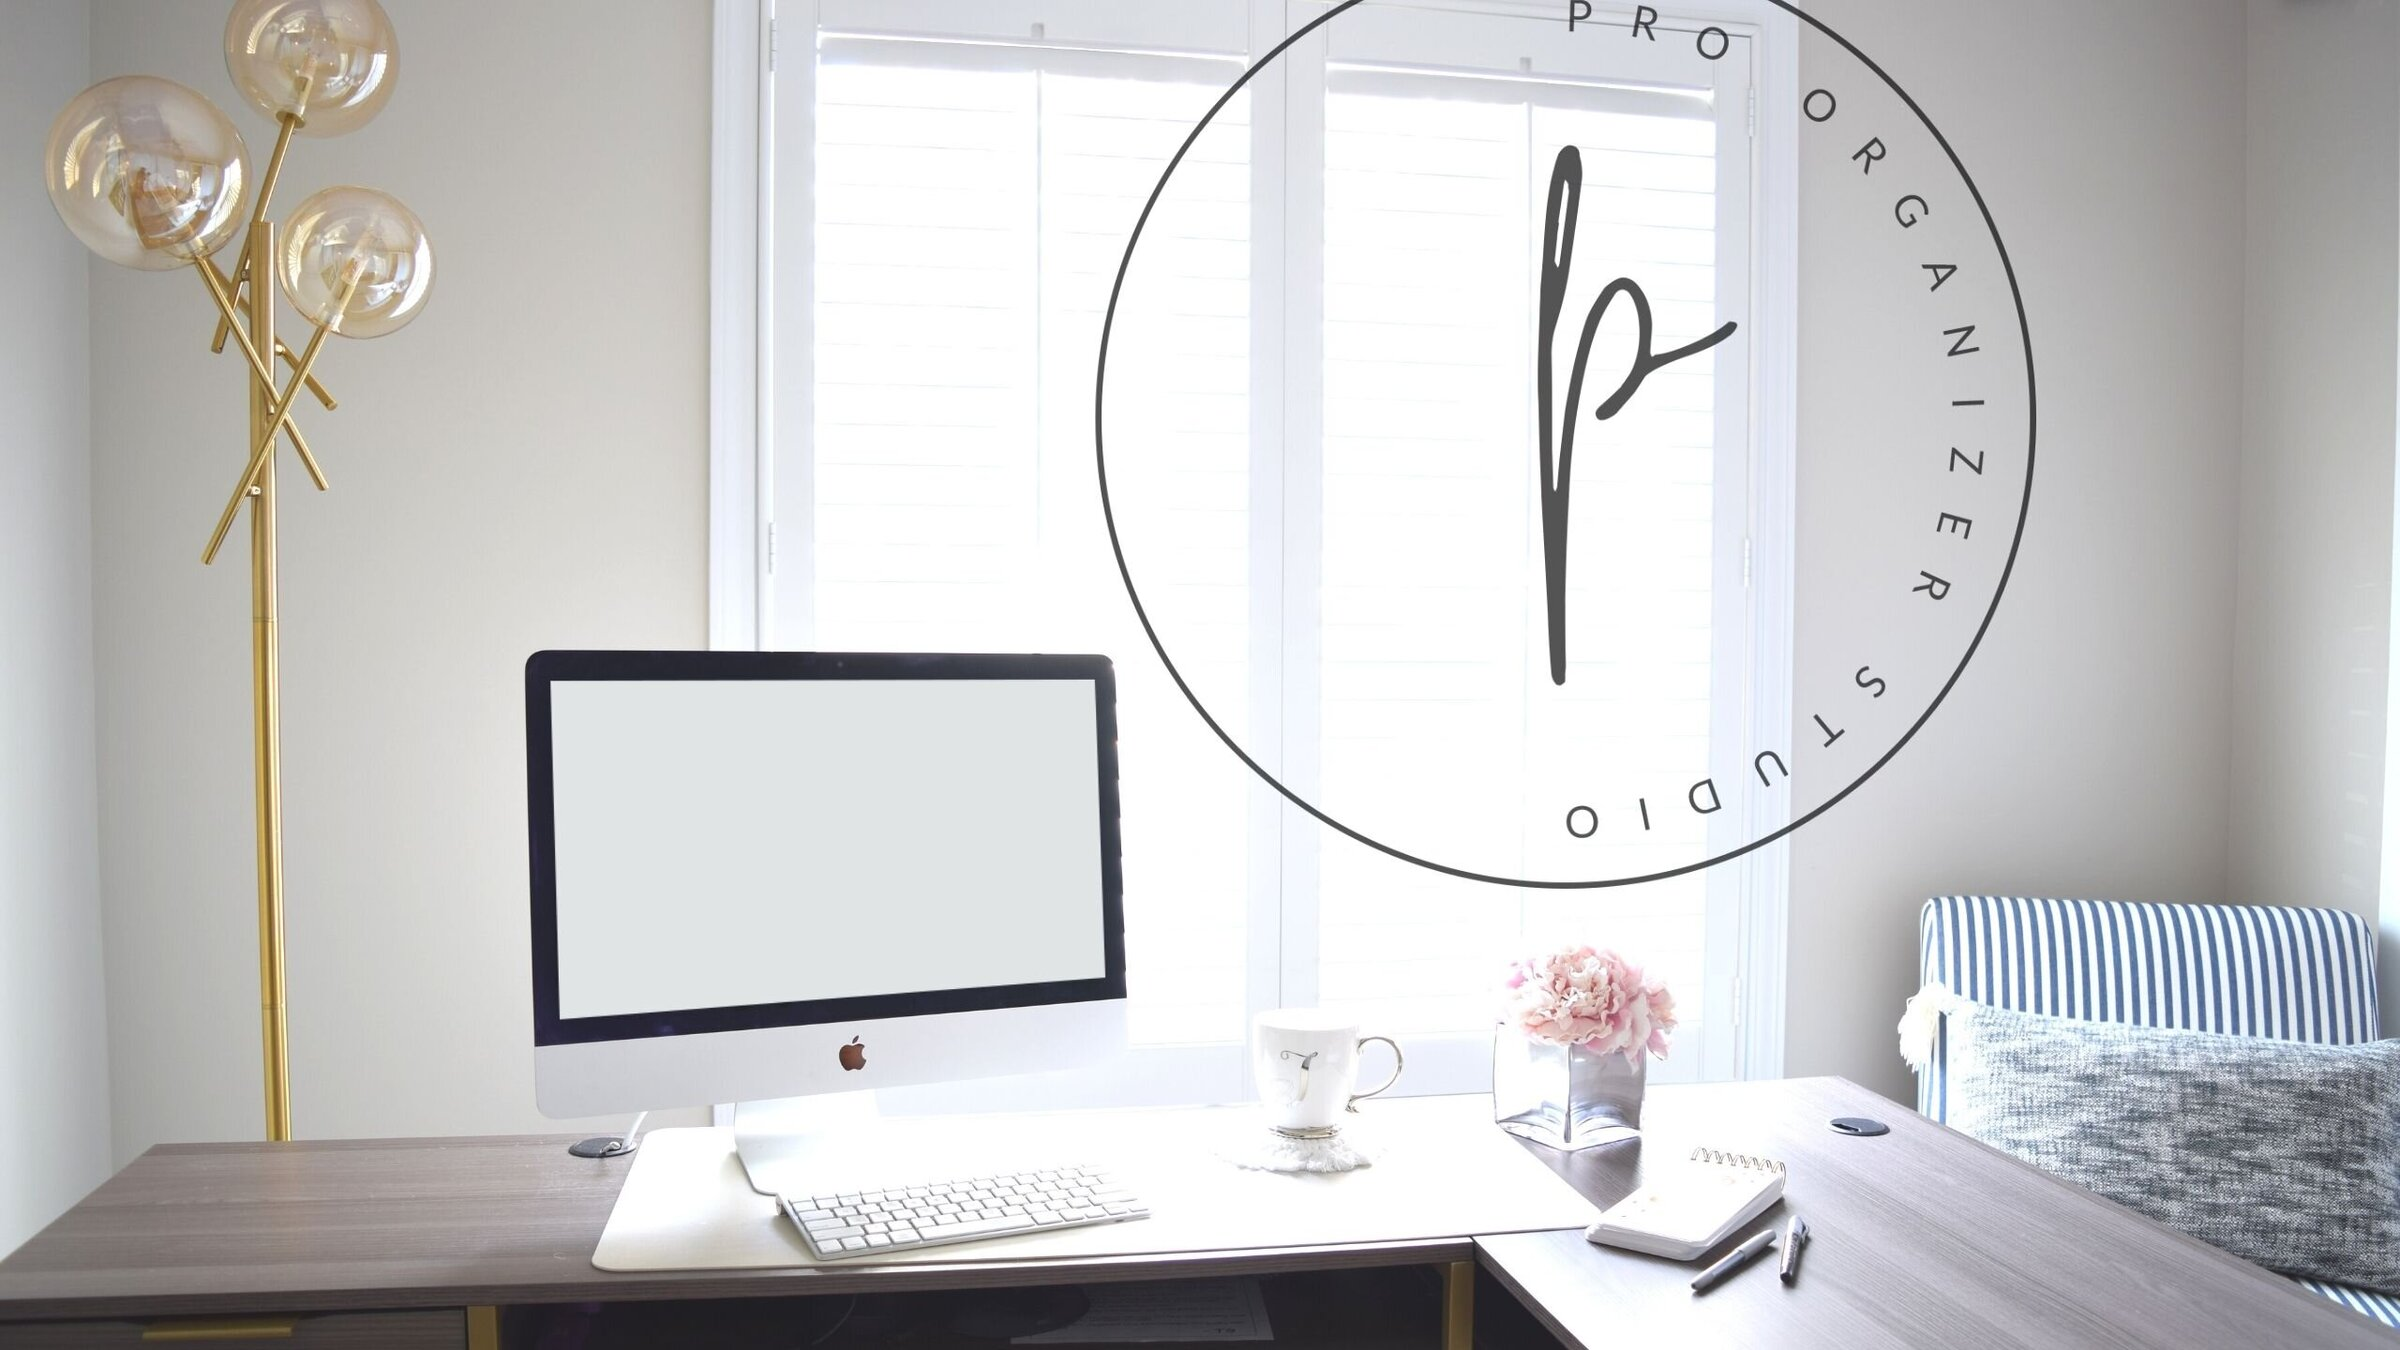 start an organizing business with pro organizer studio